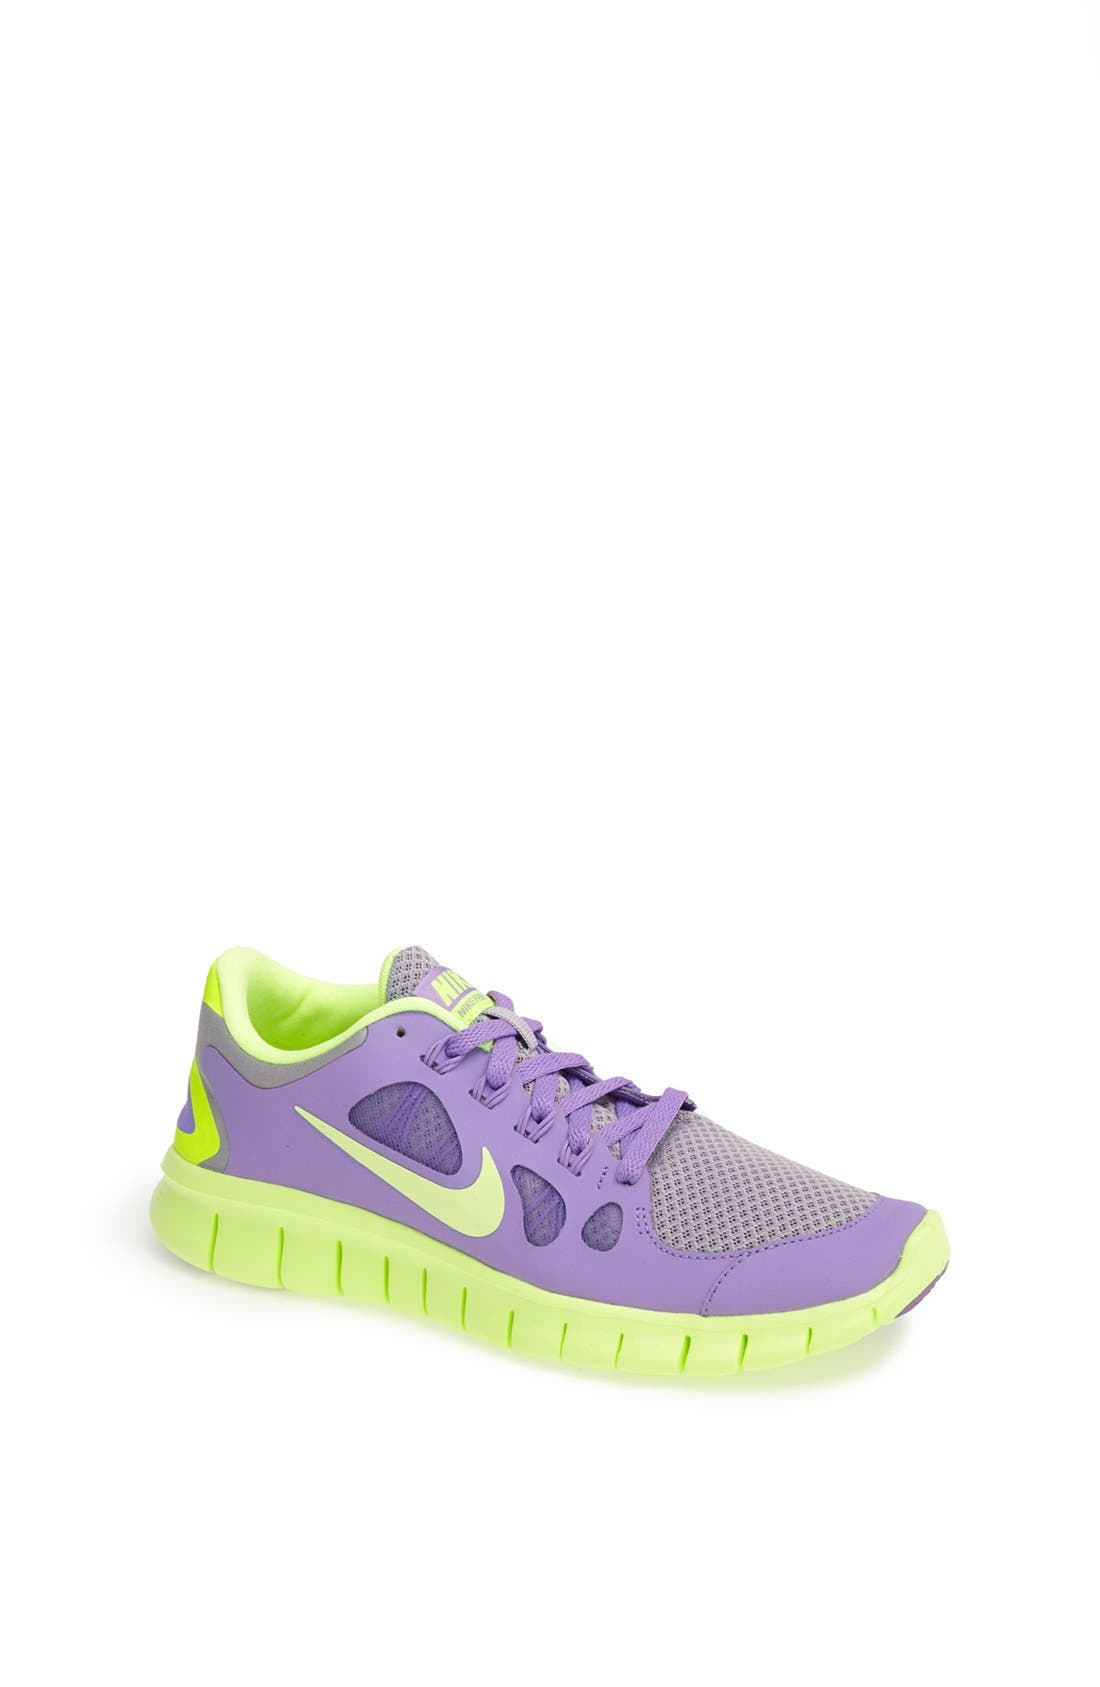 Main Image - Nike 'Free Run 5.0' Sneaker (Big Kid)